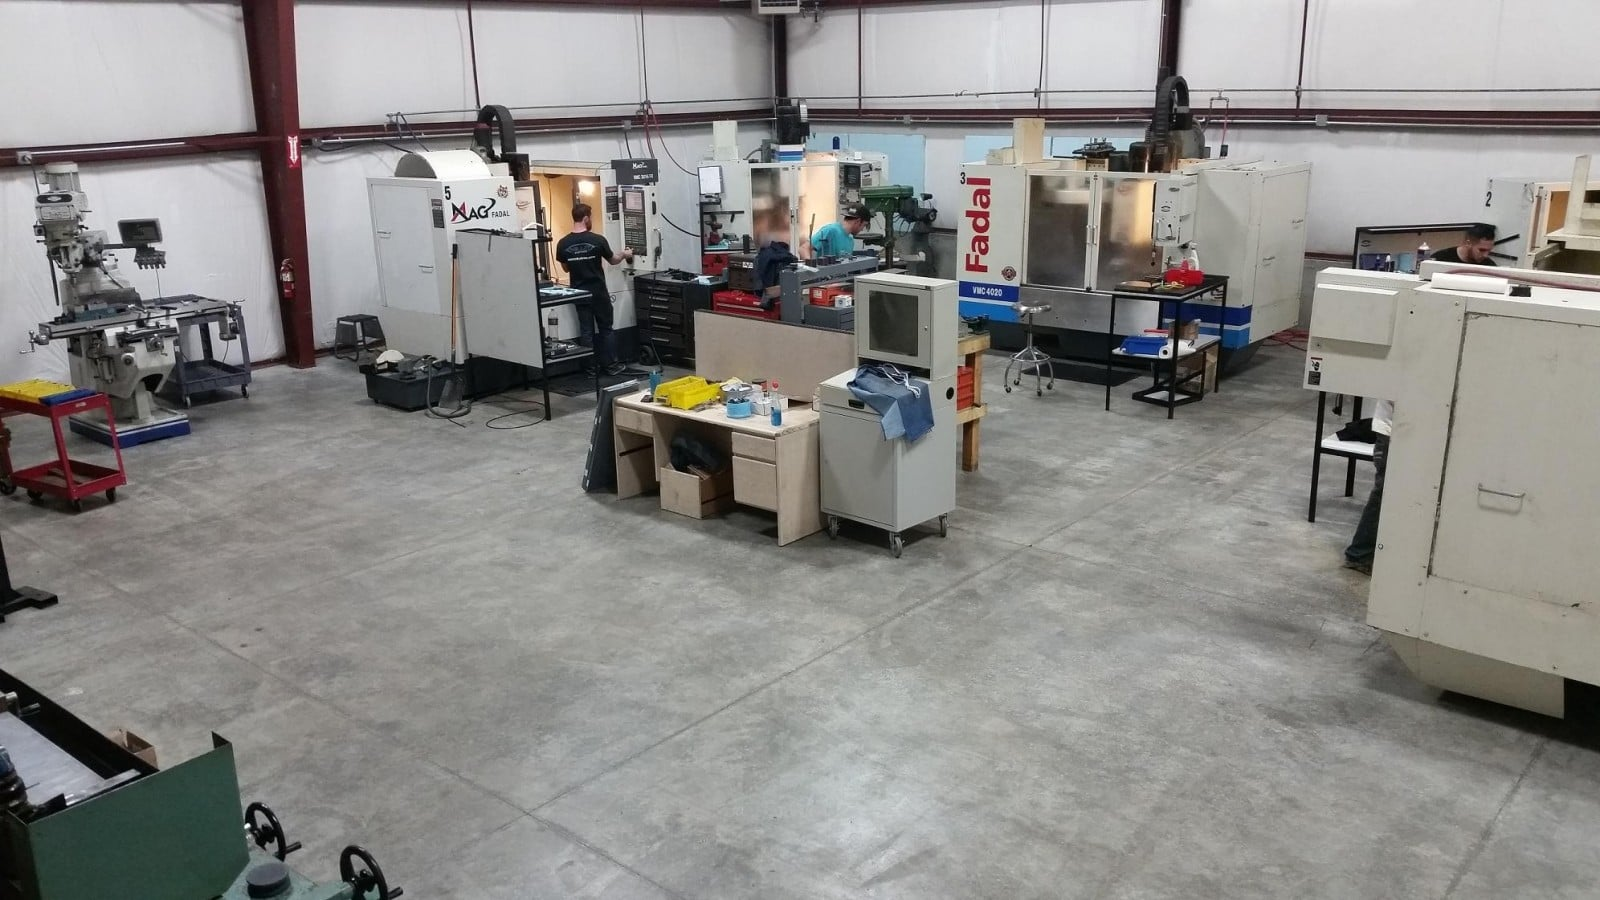 We are equipped with a full CNC machine, along with manual mill and lathe support equipment